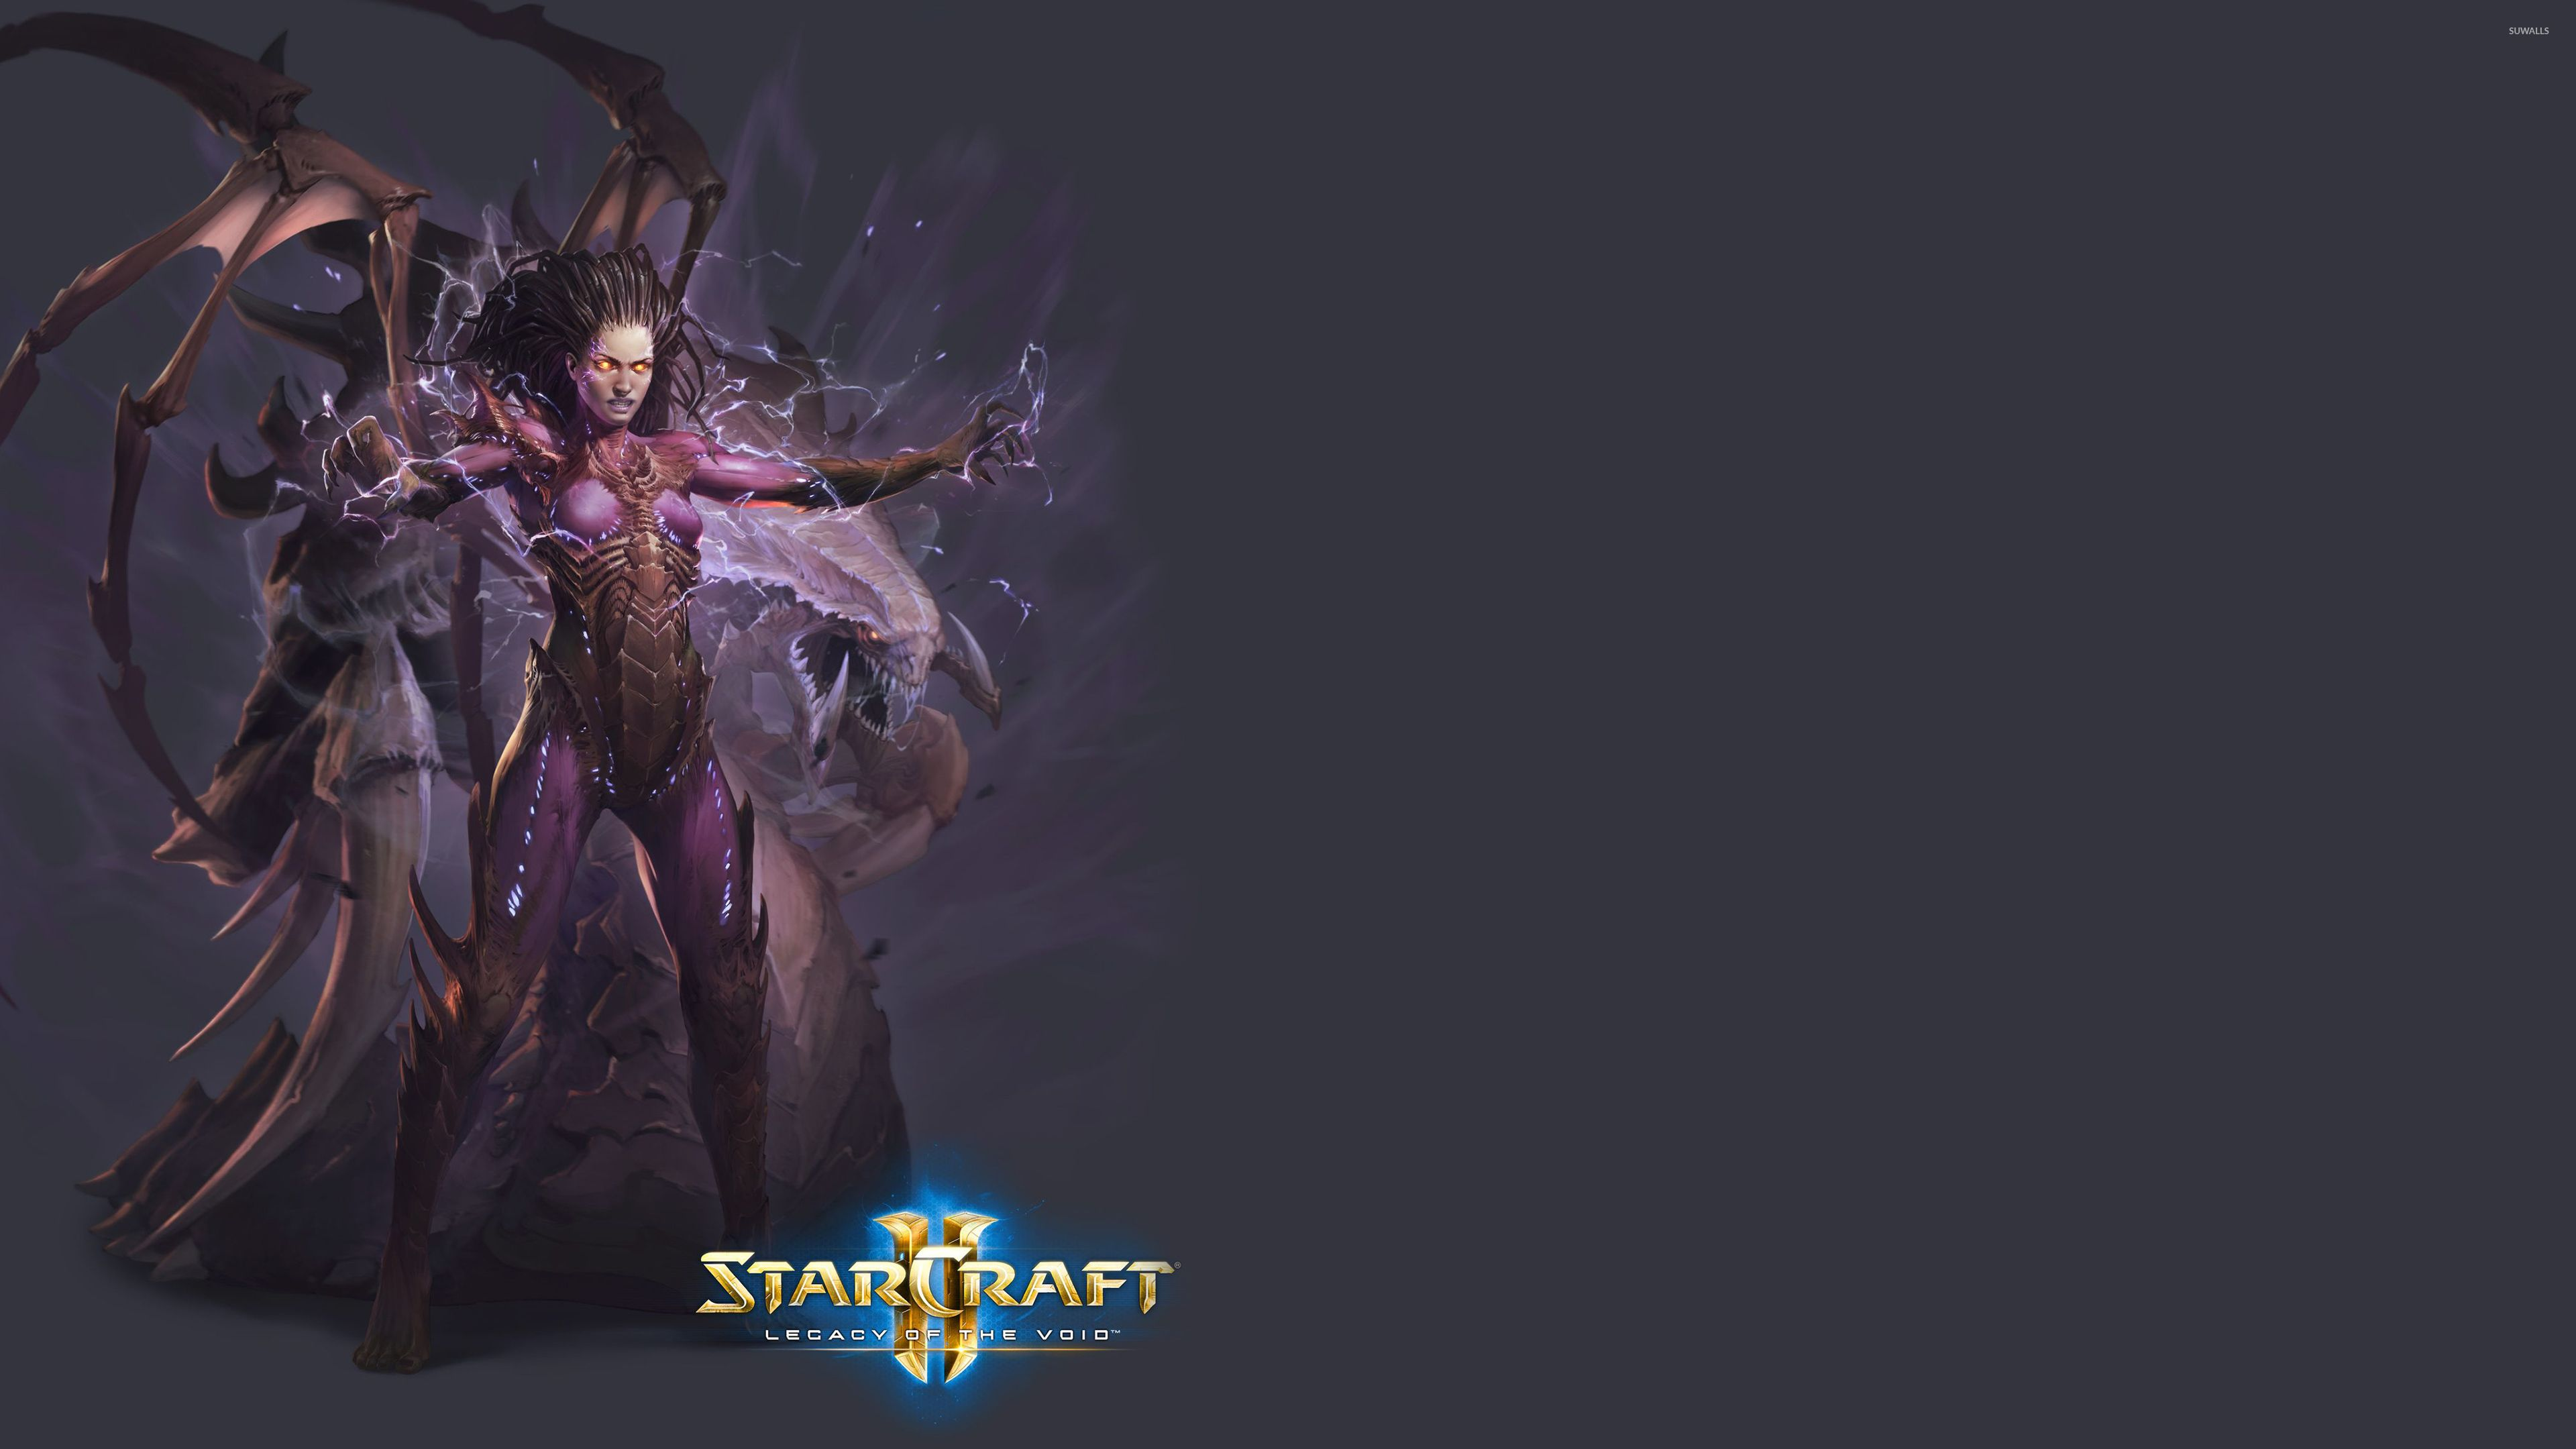 Starcraft Wallpaper Elegant Starcraft Ii Wallpapers The Best